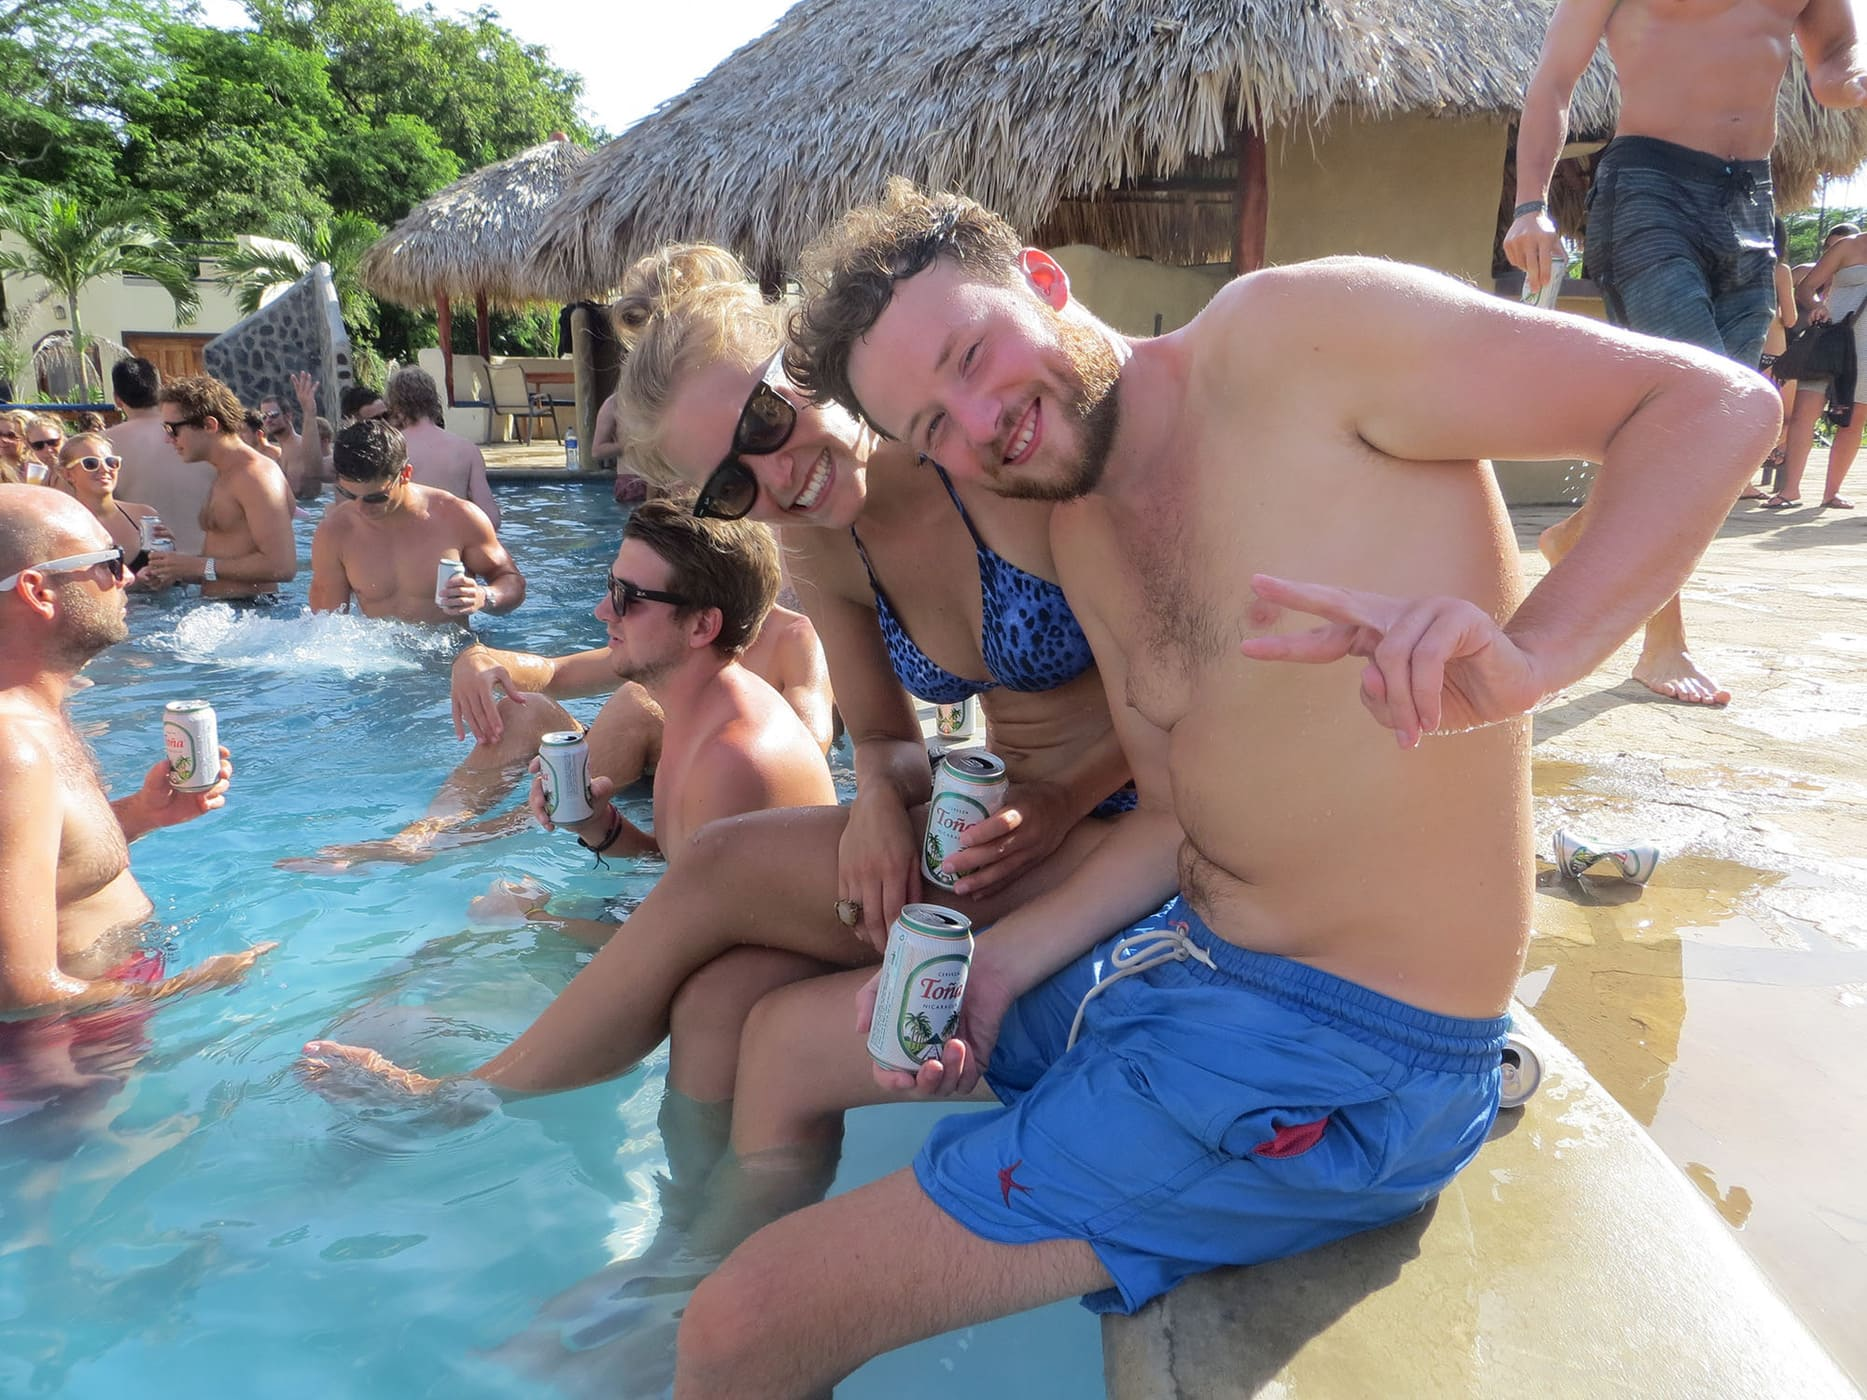 Hanging out by the pool at the Sunday Funday Pool Crawl in San Juan Del Sur, Nicaragua